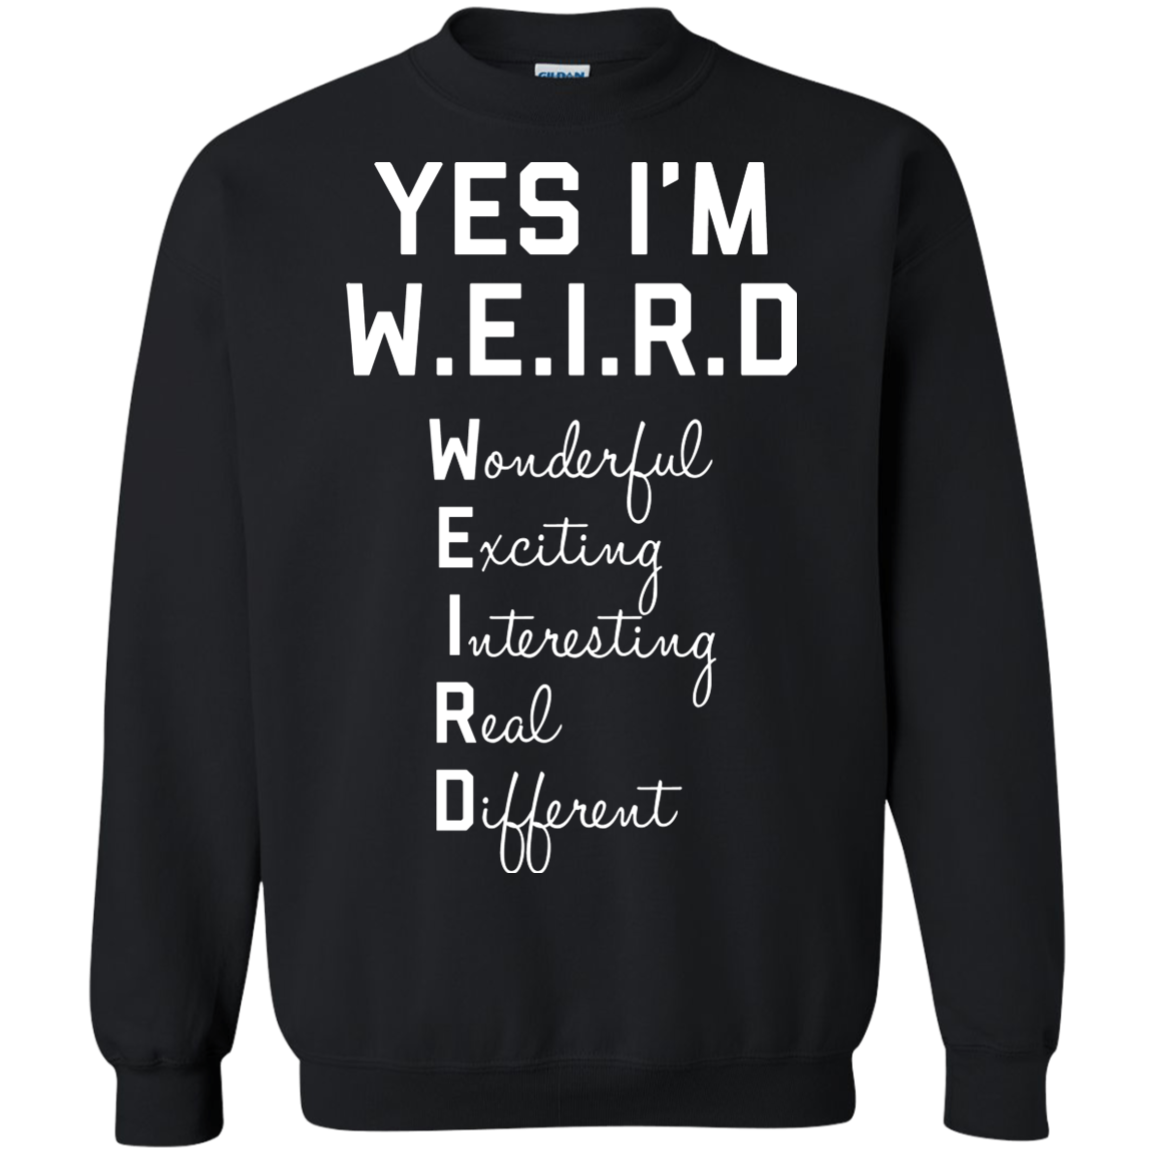 f08c39de4 Yes I'm W.E.I.R.D. - T-shirts, Hoodies & Sweatshirts available - Funny  Weird Shirts